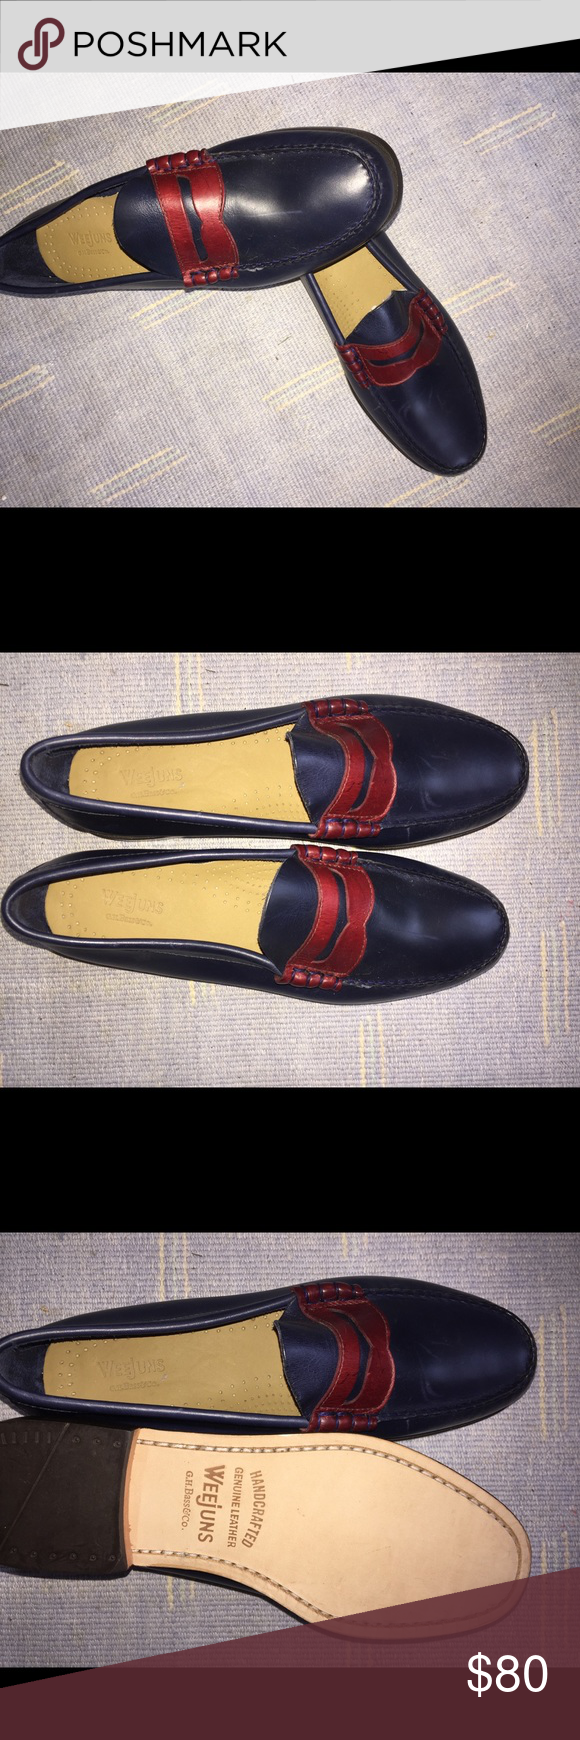 da6d0efbe0a GH Bass TWO TONE WEEJUNS 9.5 THE ORIGINAL 1936 LOGAN WEEJUNS GETS AN UPDATE  IN TWO